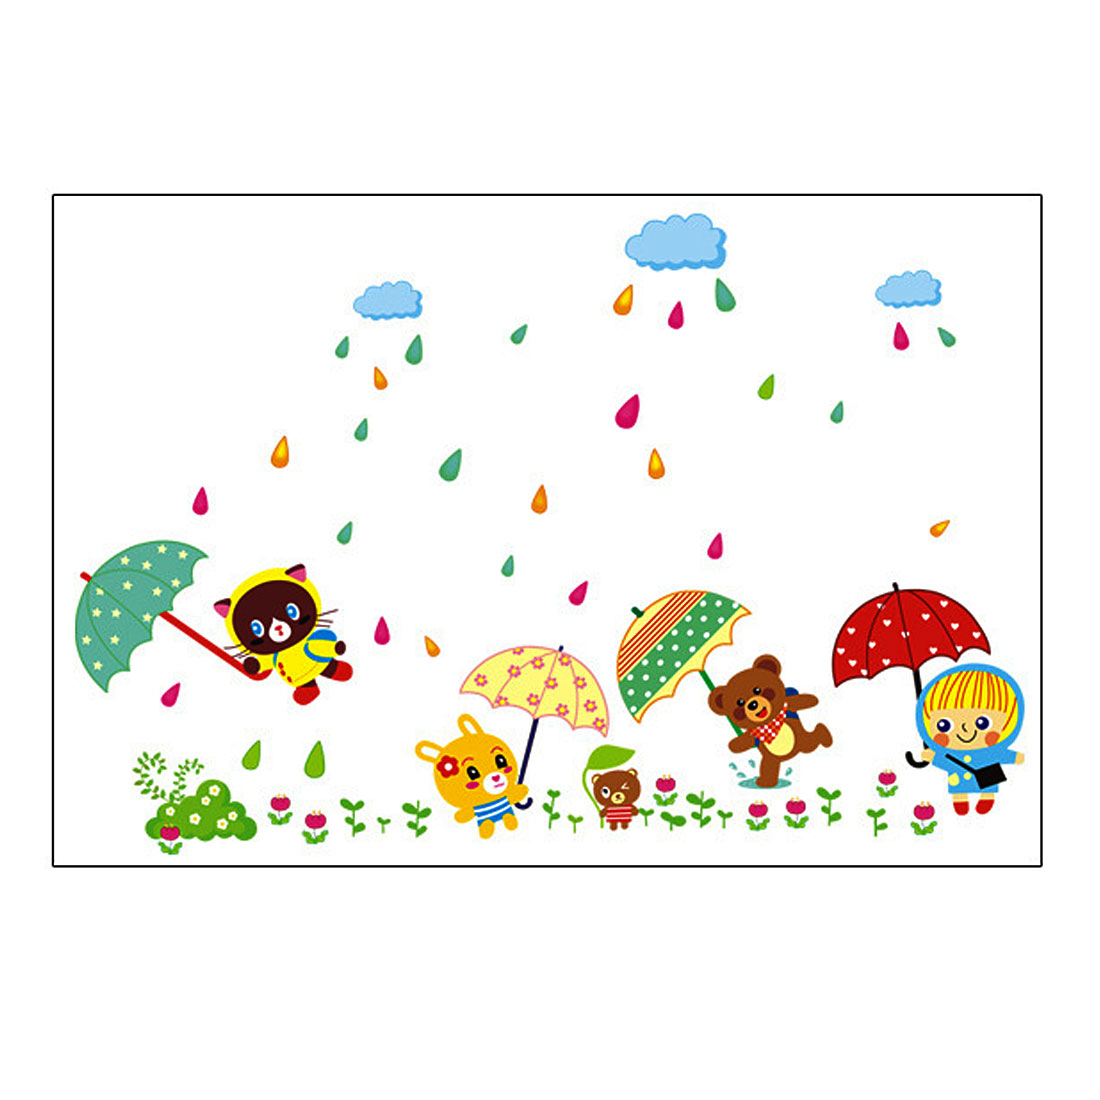 Home Decor Multicolor DIY Removable PVC Animals Holding Umbrellas Wall Sticker Decal 1x1.5m